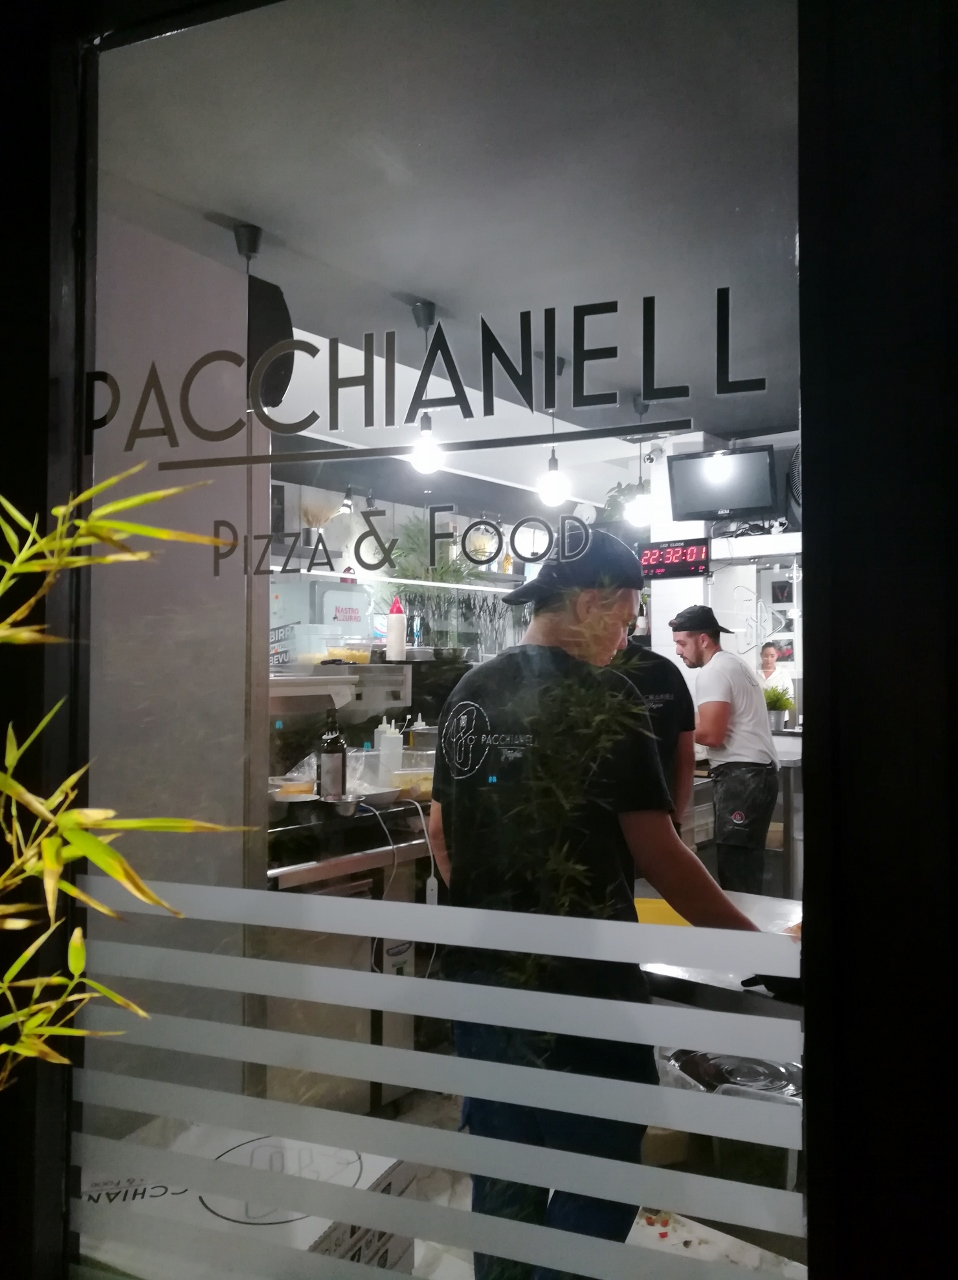 O' Pacchianiell - ingresso